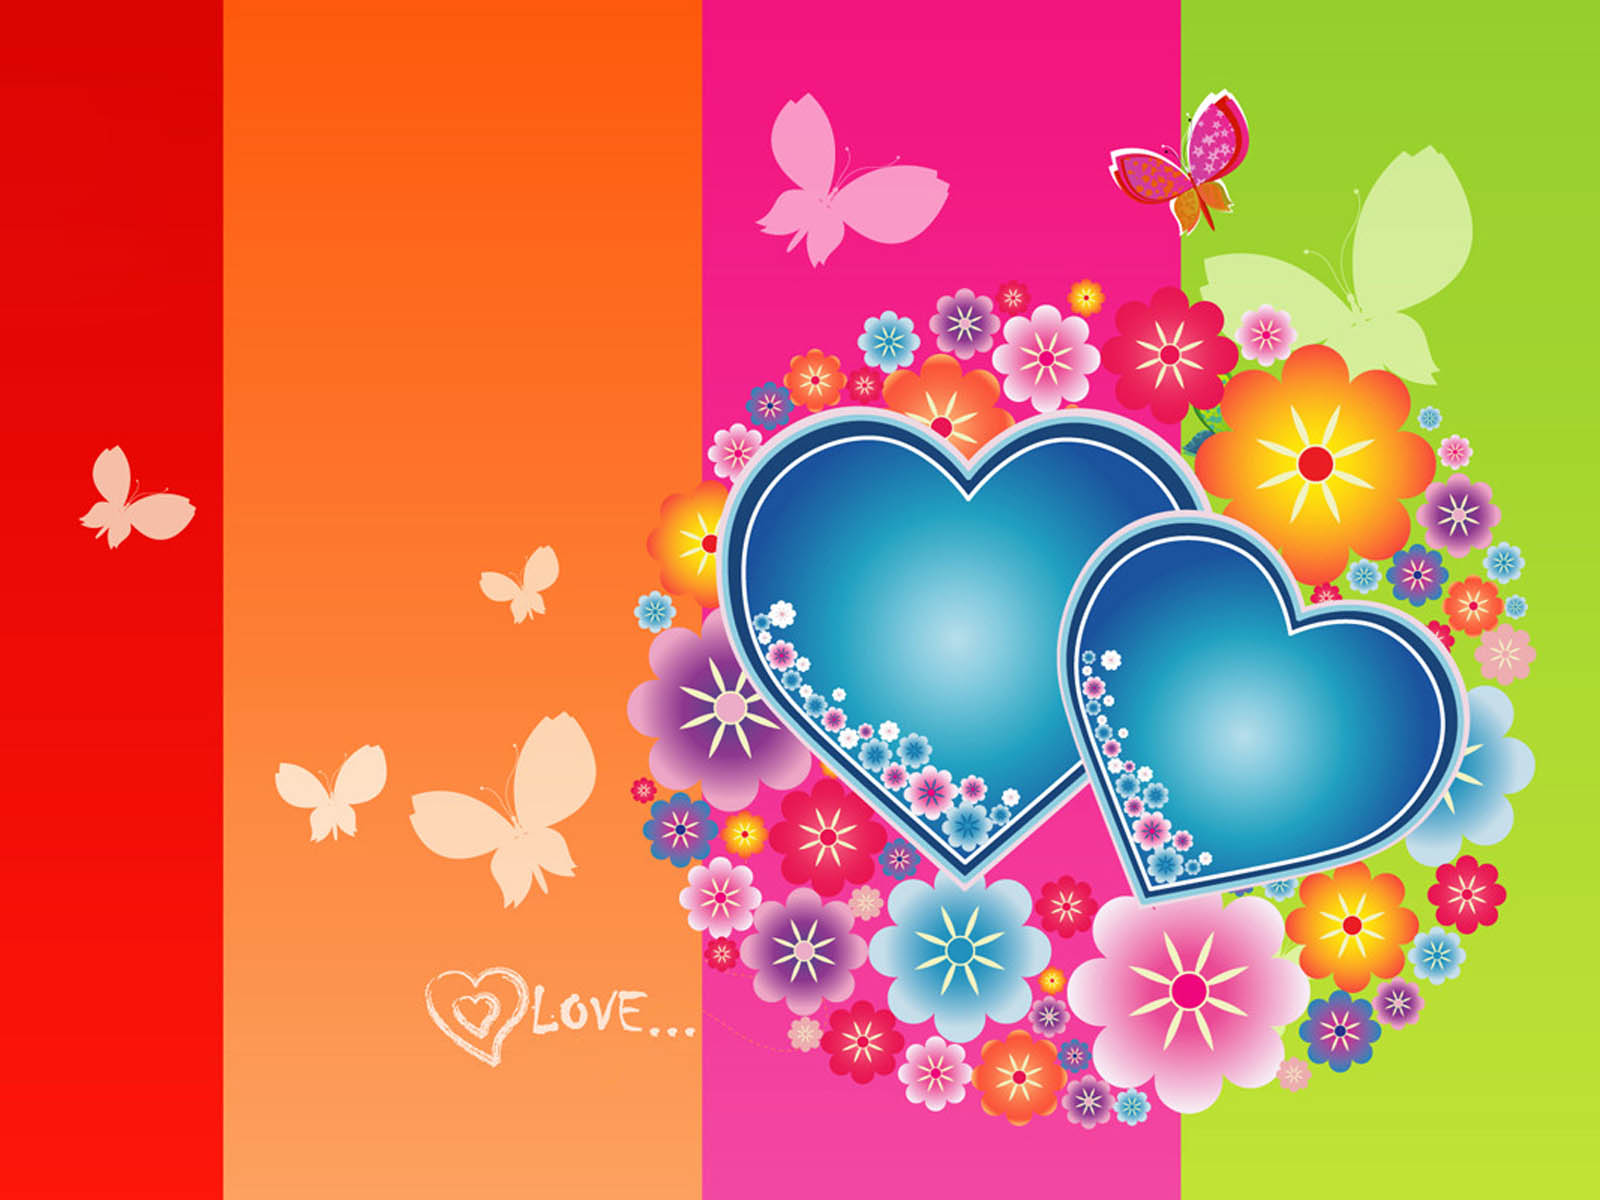 Letter Tag wallpapers: Buttrfly Envelopes Firefox Letter Love ...